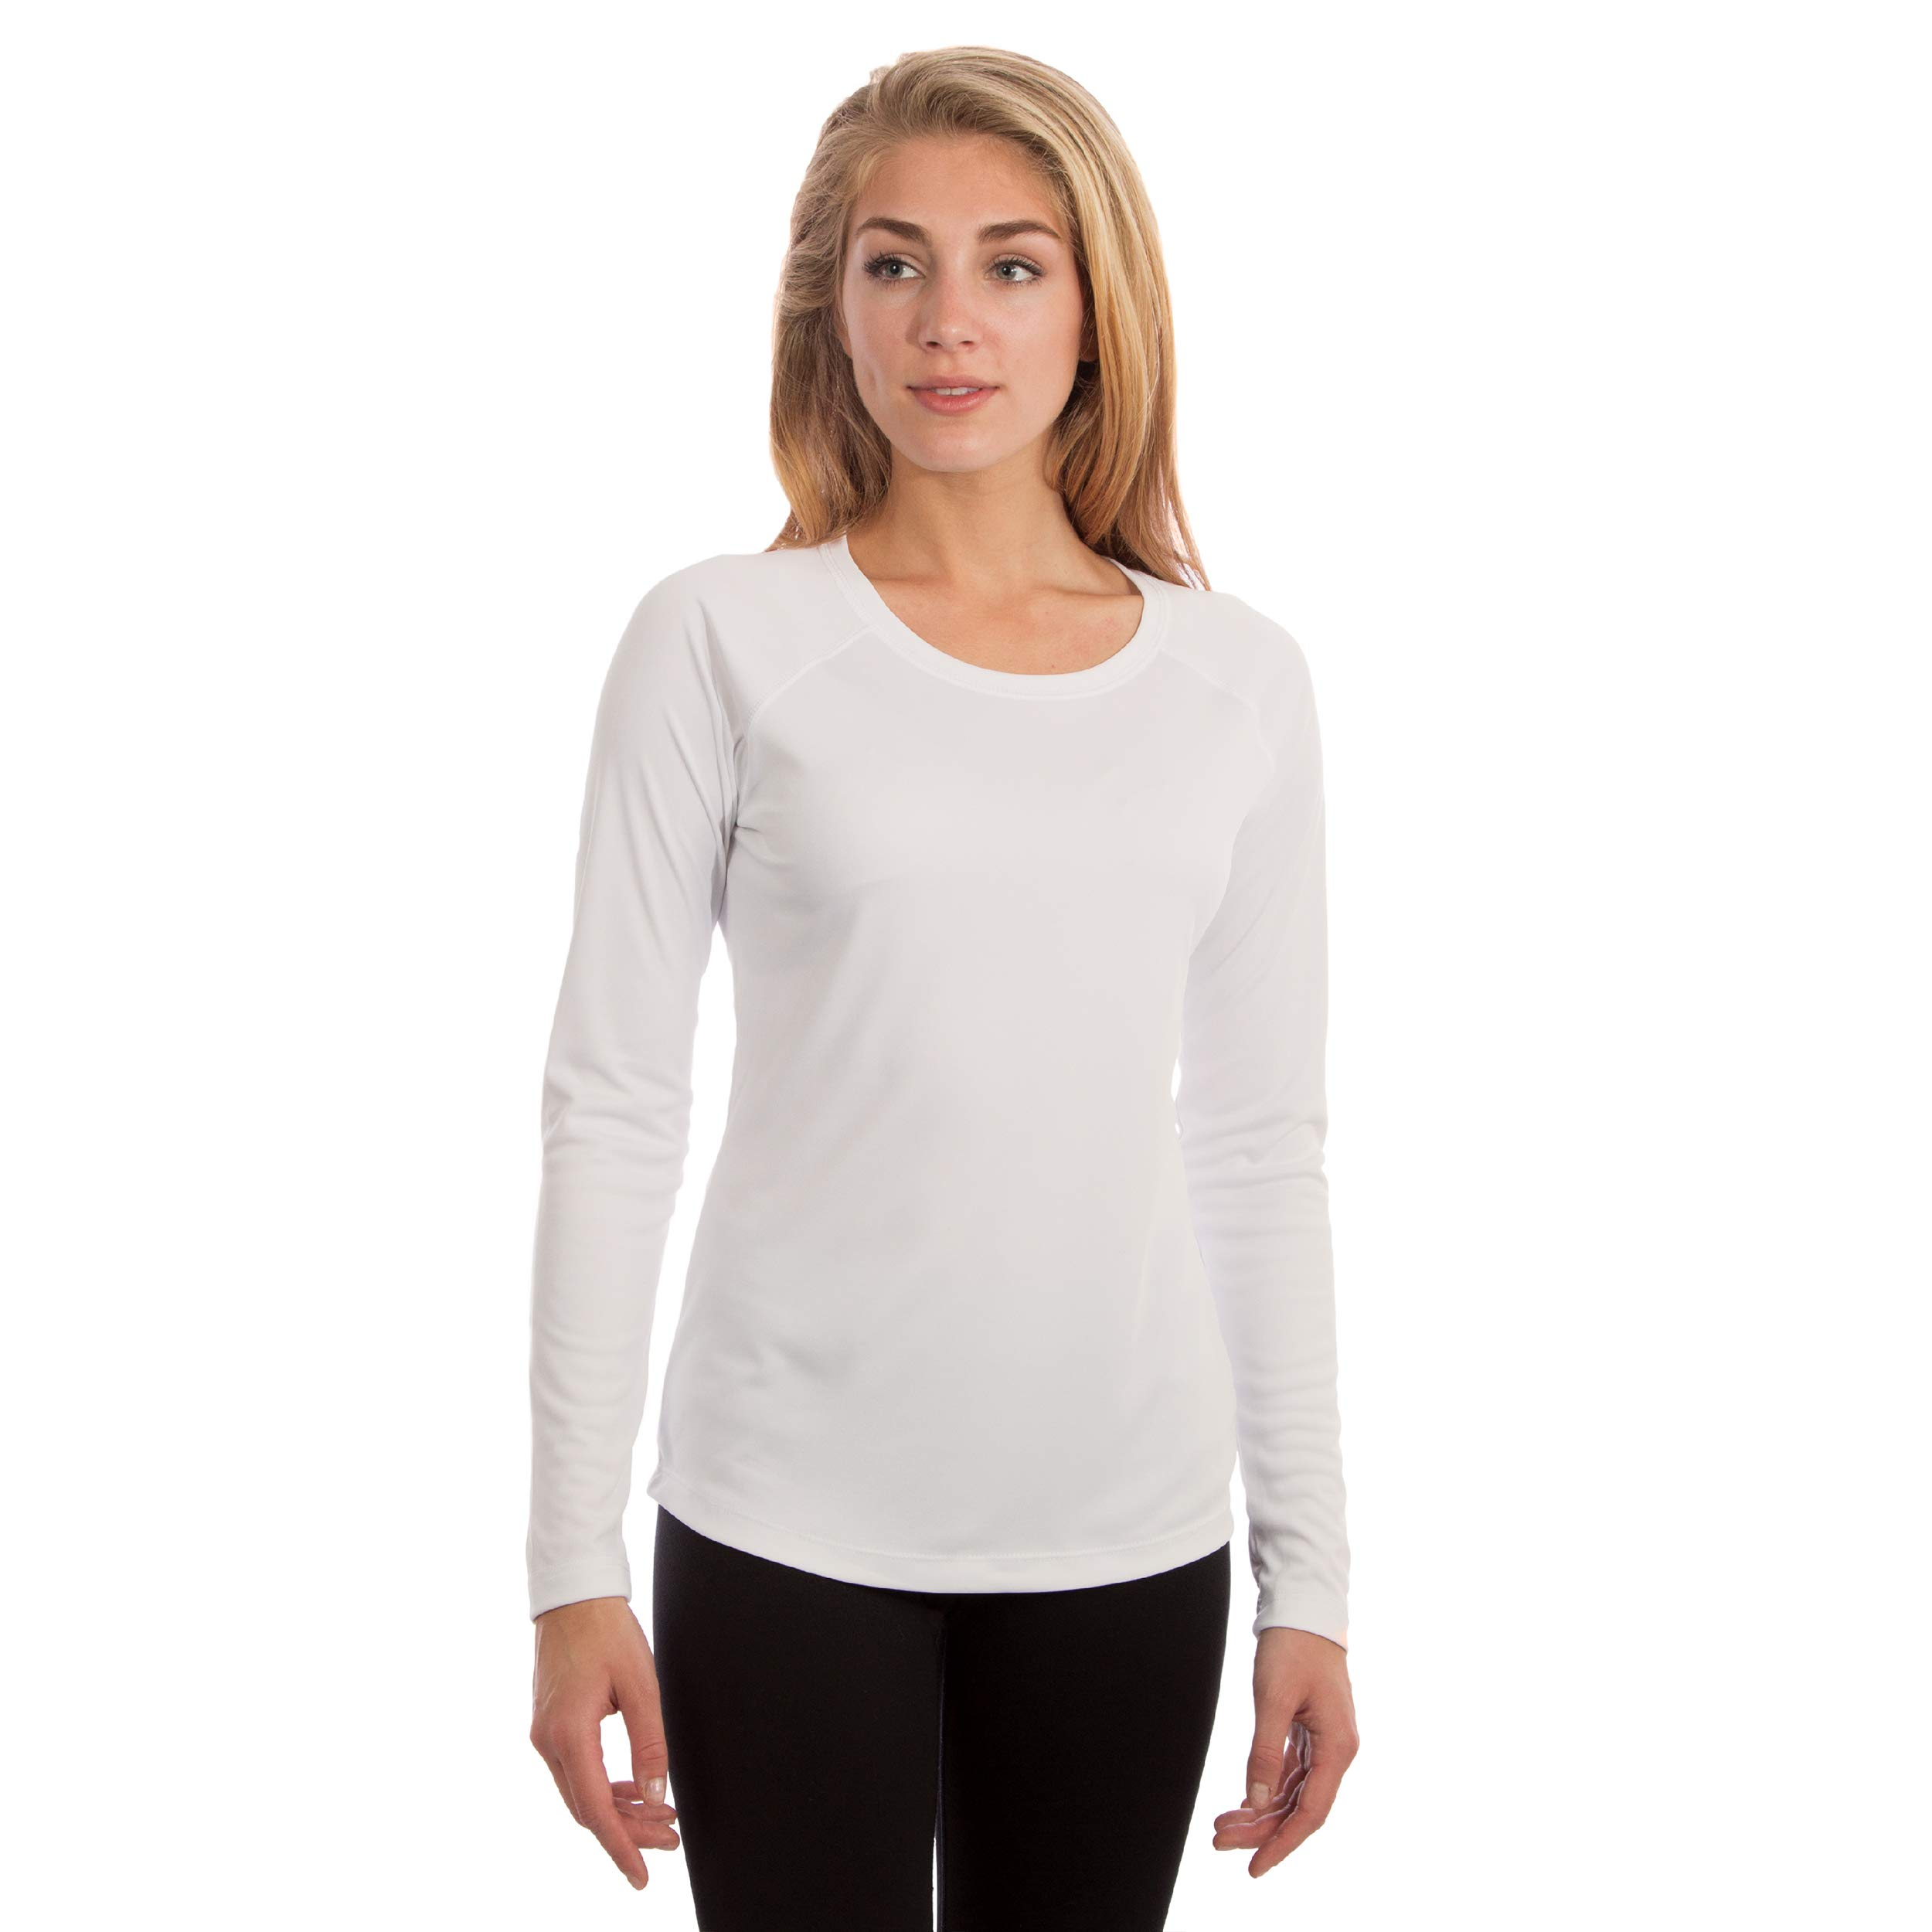 Vapor Apparel Women's UPF 50+ UV Sun Protection Long Sleeve Performance Slim Fit T-Shirt for Sports and Outdoor Lifestyle